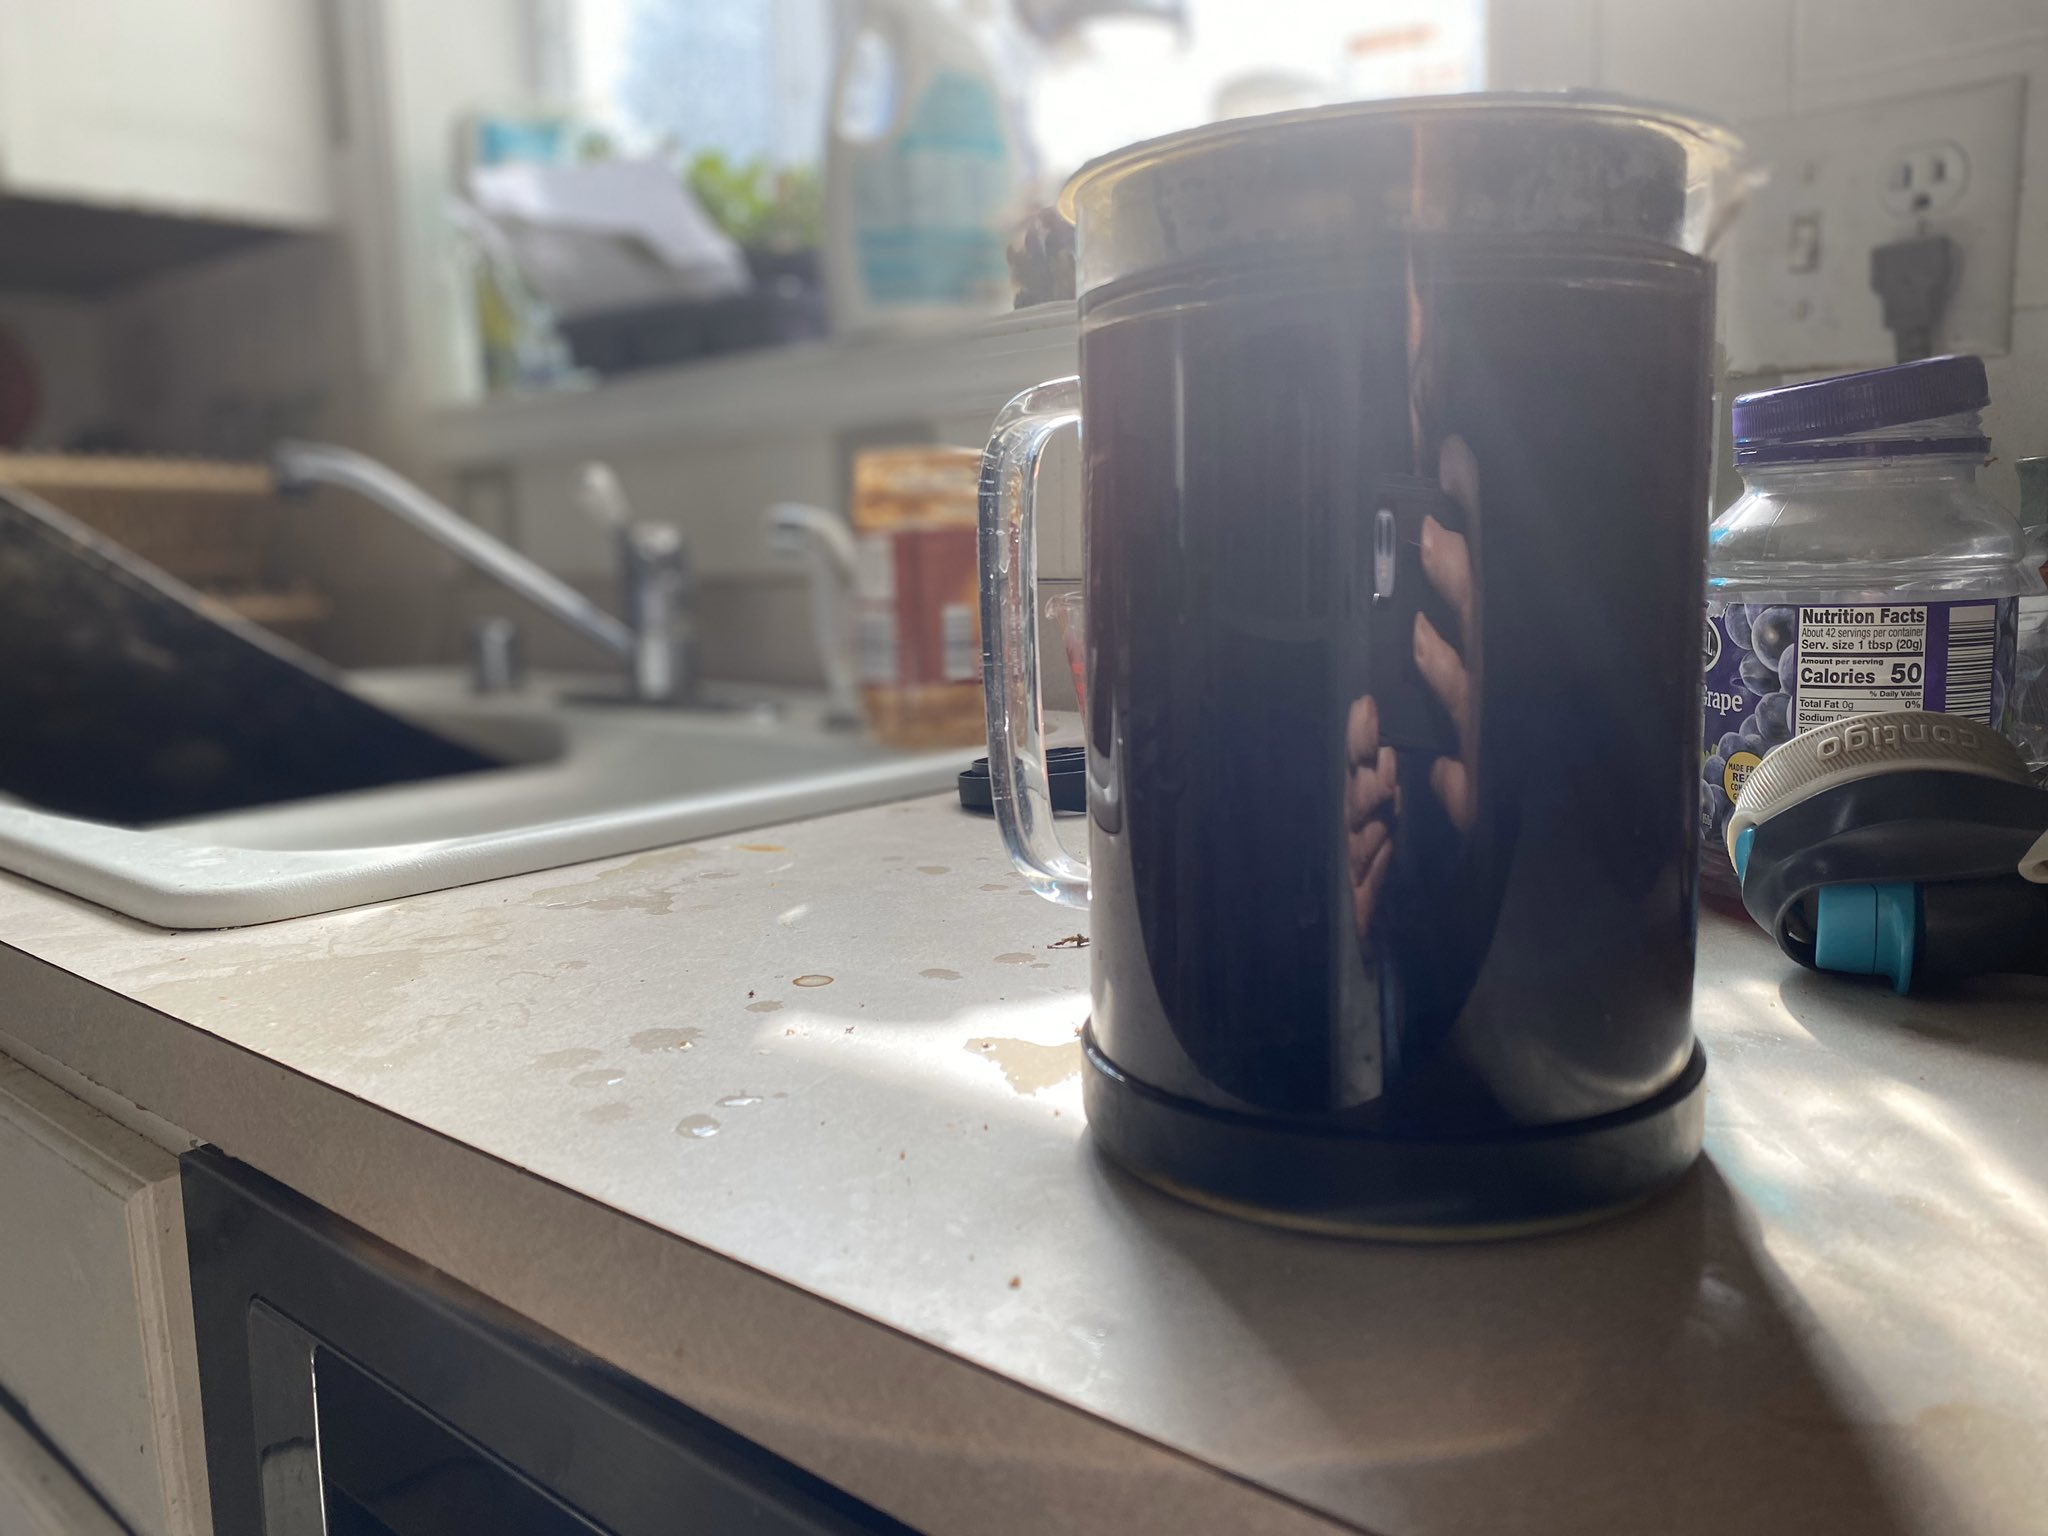 Cold brew is brewing